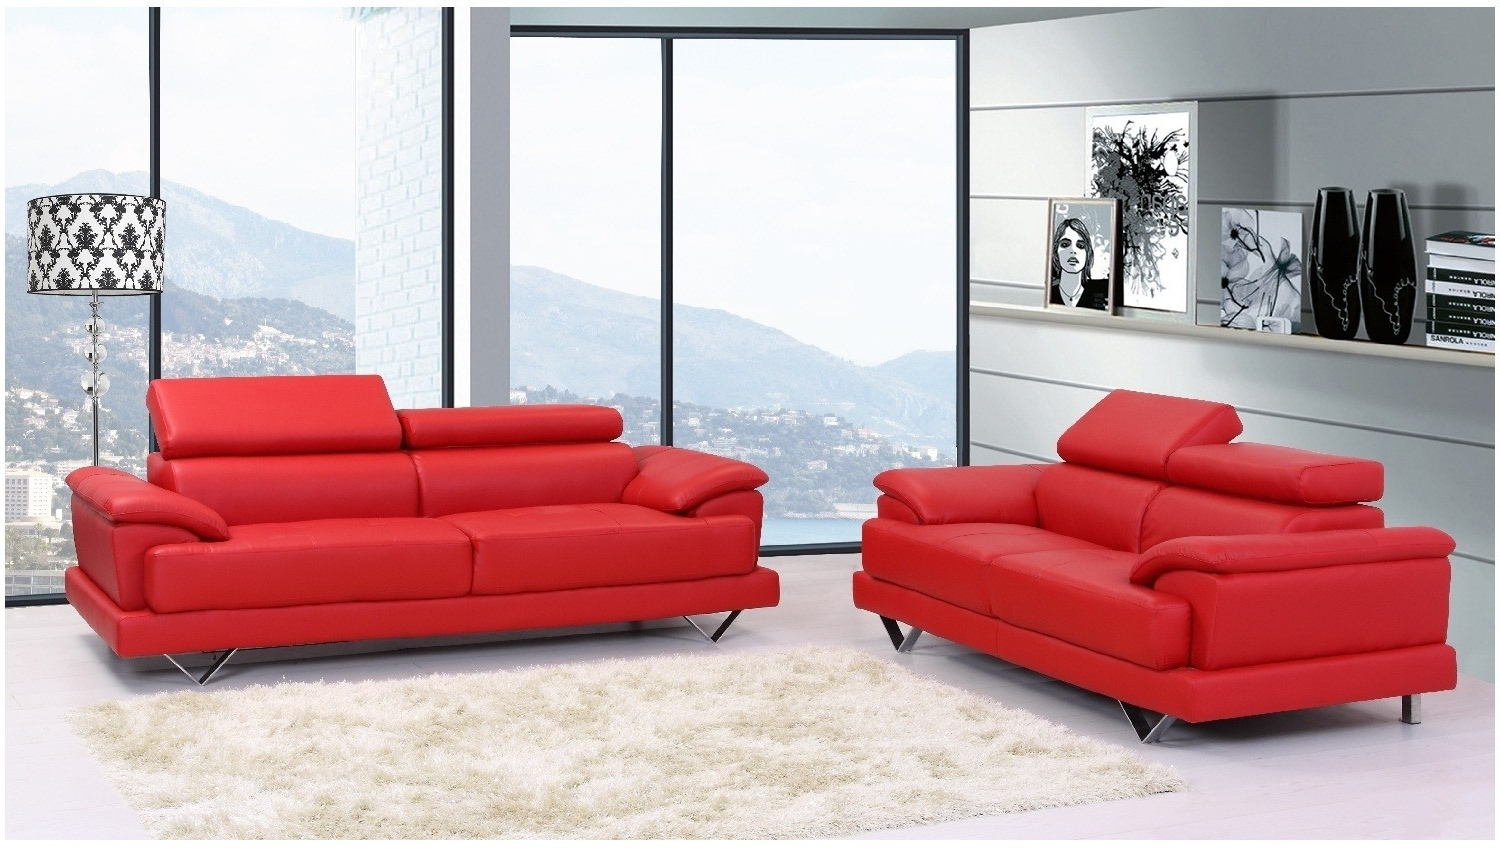 Red Leather Sofas Within Most Up To Date Perfect Red Leather Sofas 90 For Contemporary Sofa Inspiration (View 14 of 15)